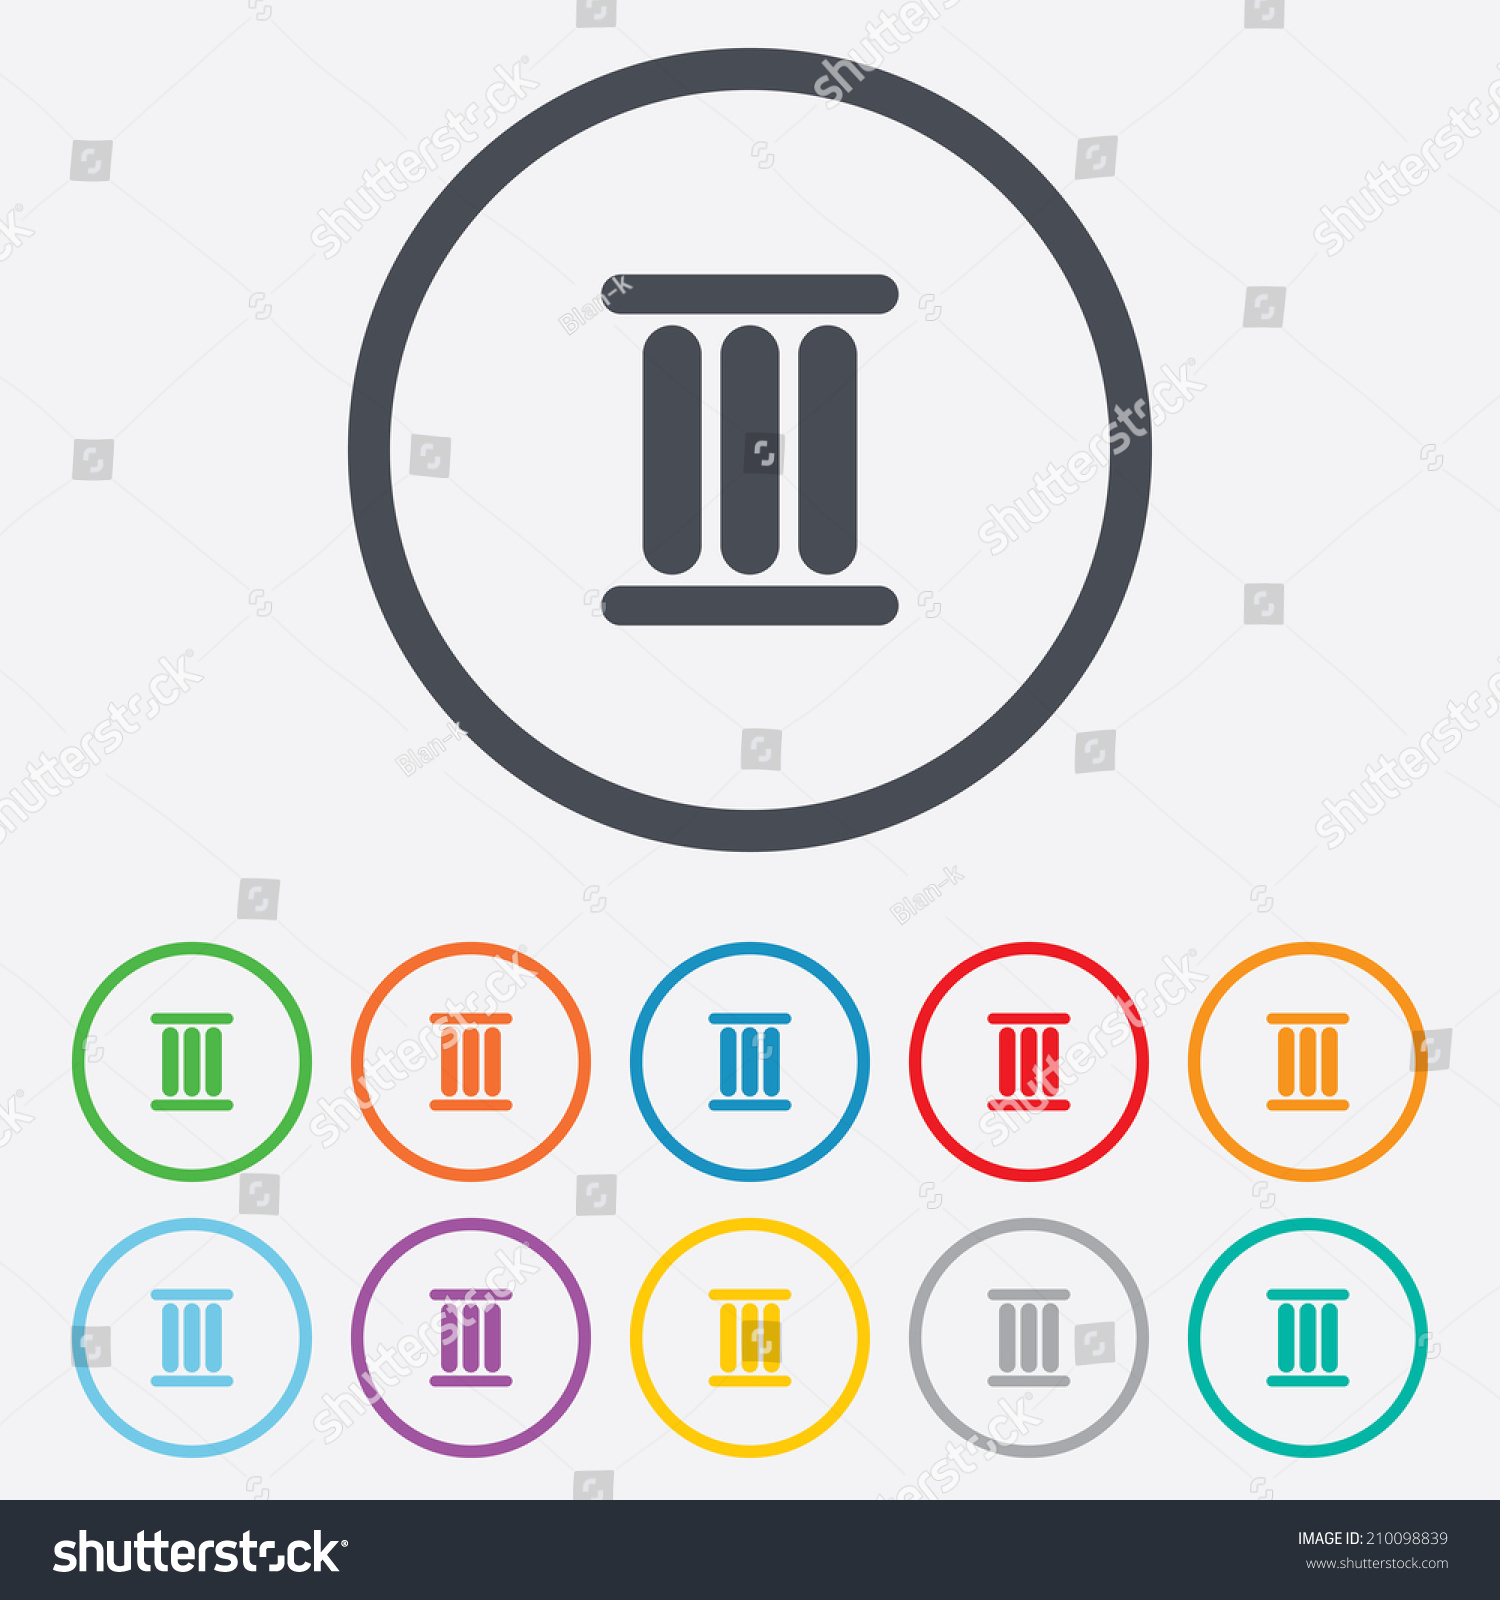 Worksheet Three In Roman Numeral roman numeral three sign icon stock vector 210098839 number symbol round circle buttons with frame